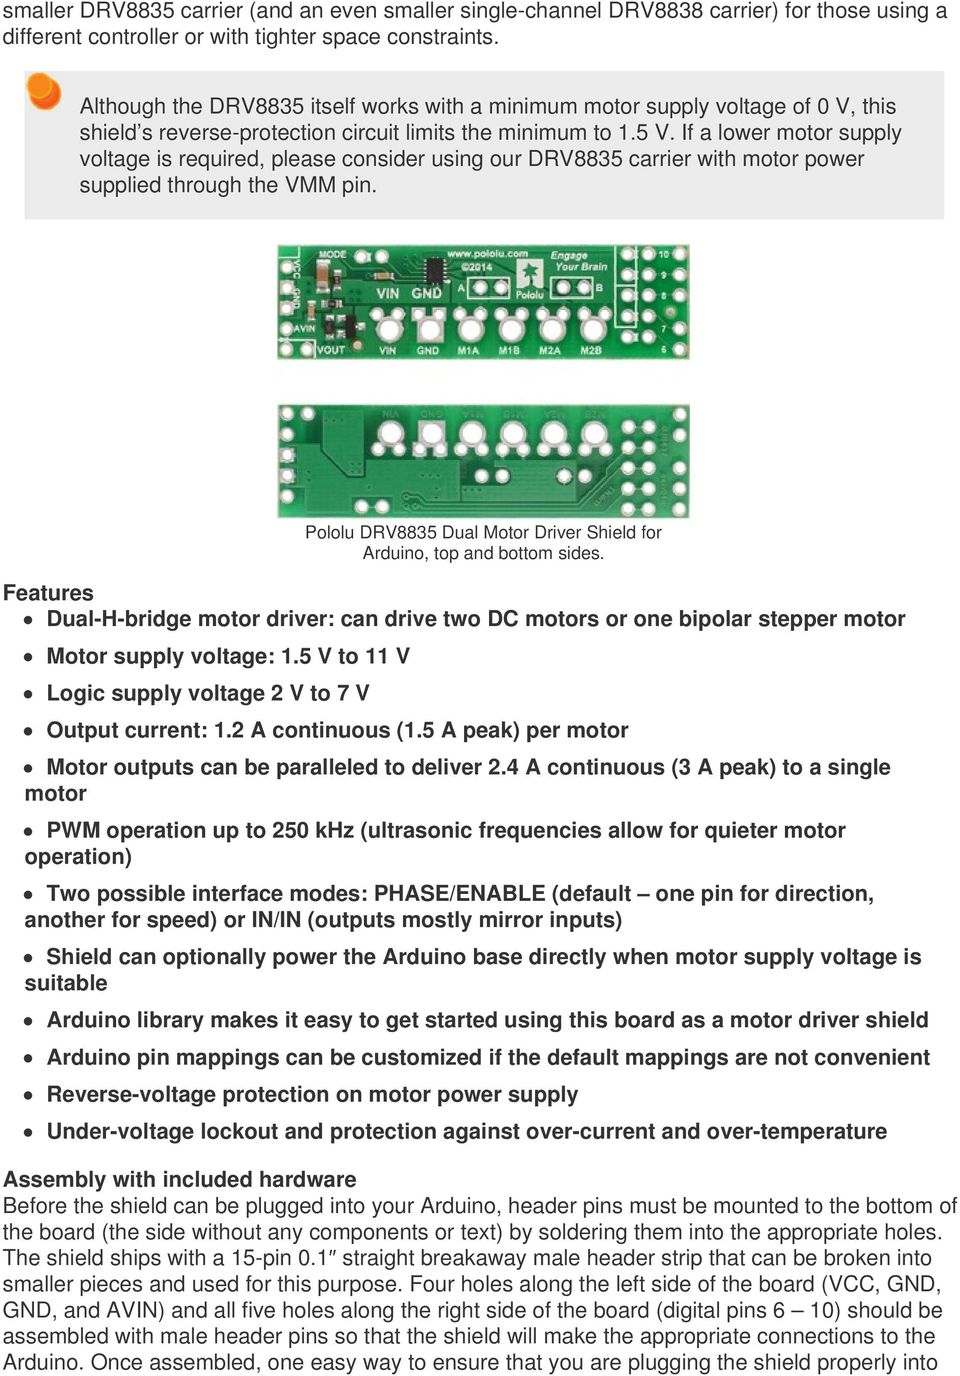 Pololu Drv8835 Dual Motor Driver Shield For Arduino Pdf Gt Control Circuits A Dc Pwm Speed Circuit If Lower Supply Voltage Is Required Please Consider Using Our Carrier With